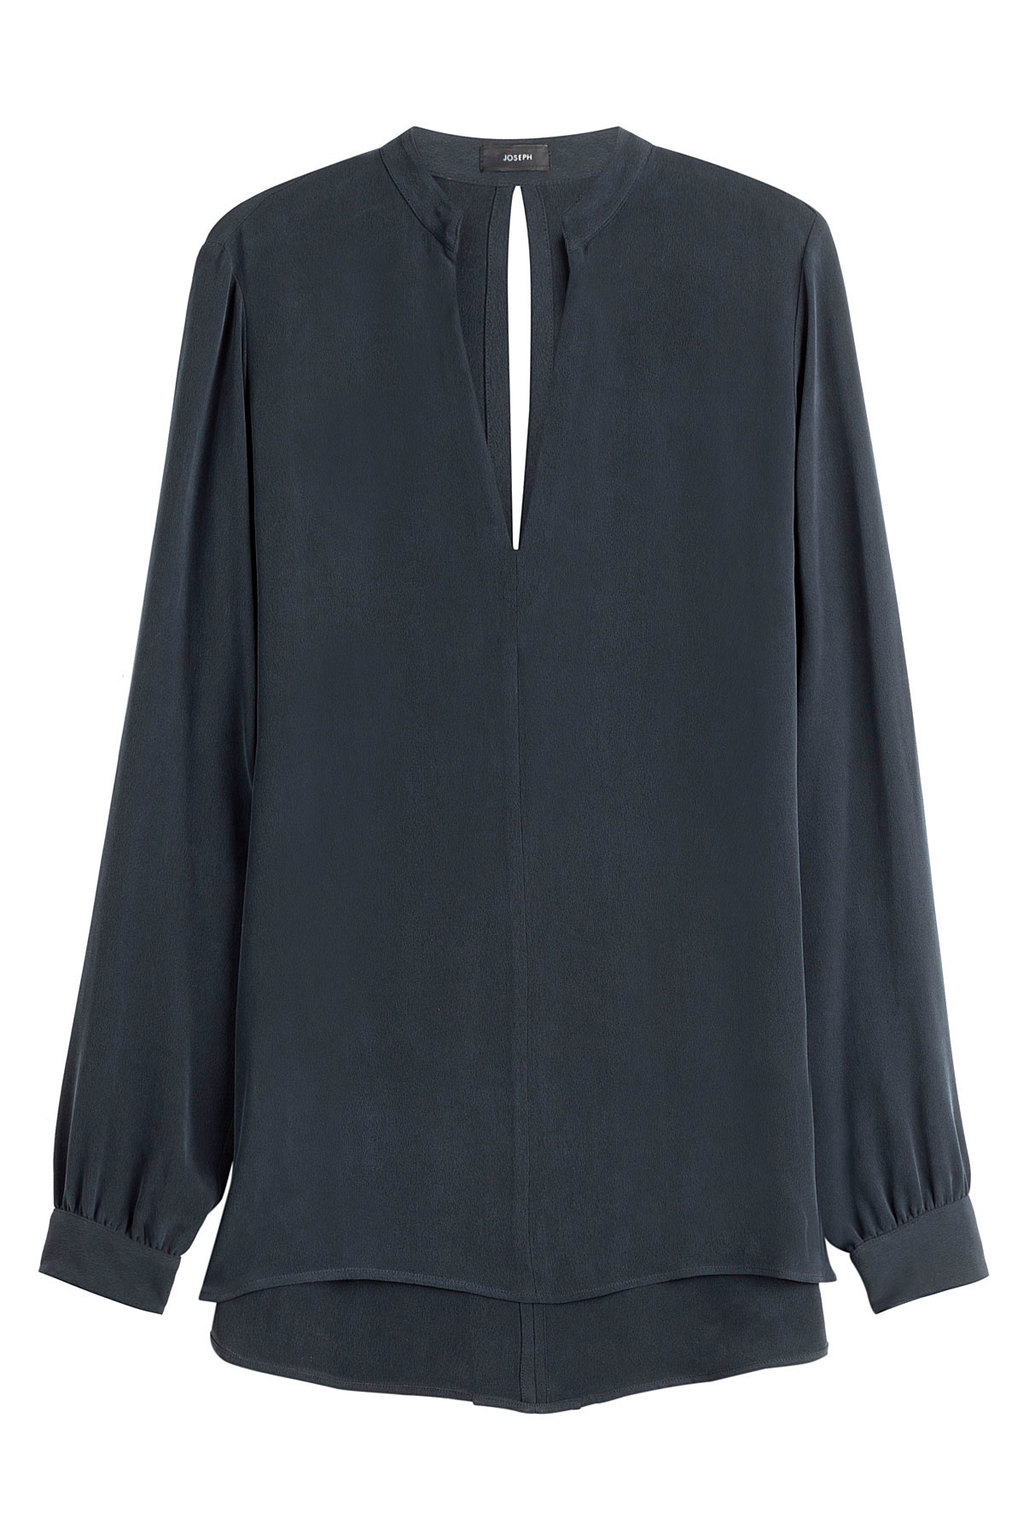 Silk Blouse - pattern: plain; length: below the bottom; style: blouse; predominant colour: navy; occasions: work, occasion; neckline: peep hole neckline; fibres: silk - 100%; fit: loose; sleeve length: long sleeve; sleeve style: standard; texture group: silky - light; pattern type: fabric; season: s/s 2016; wardrobe: basic